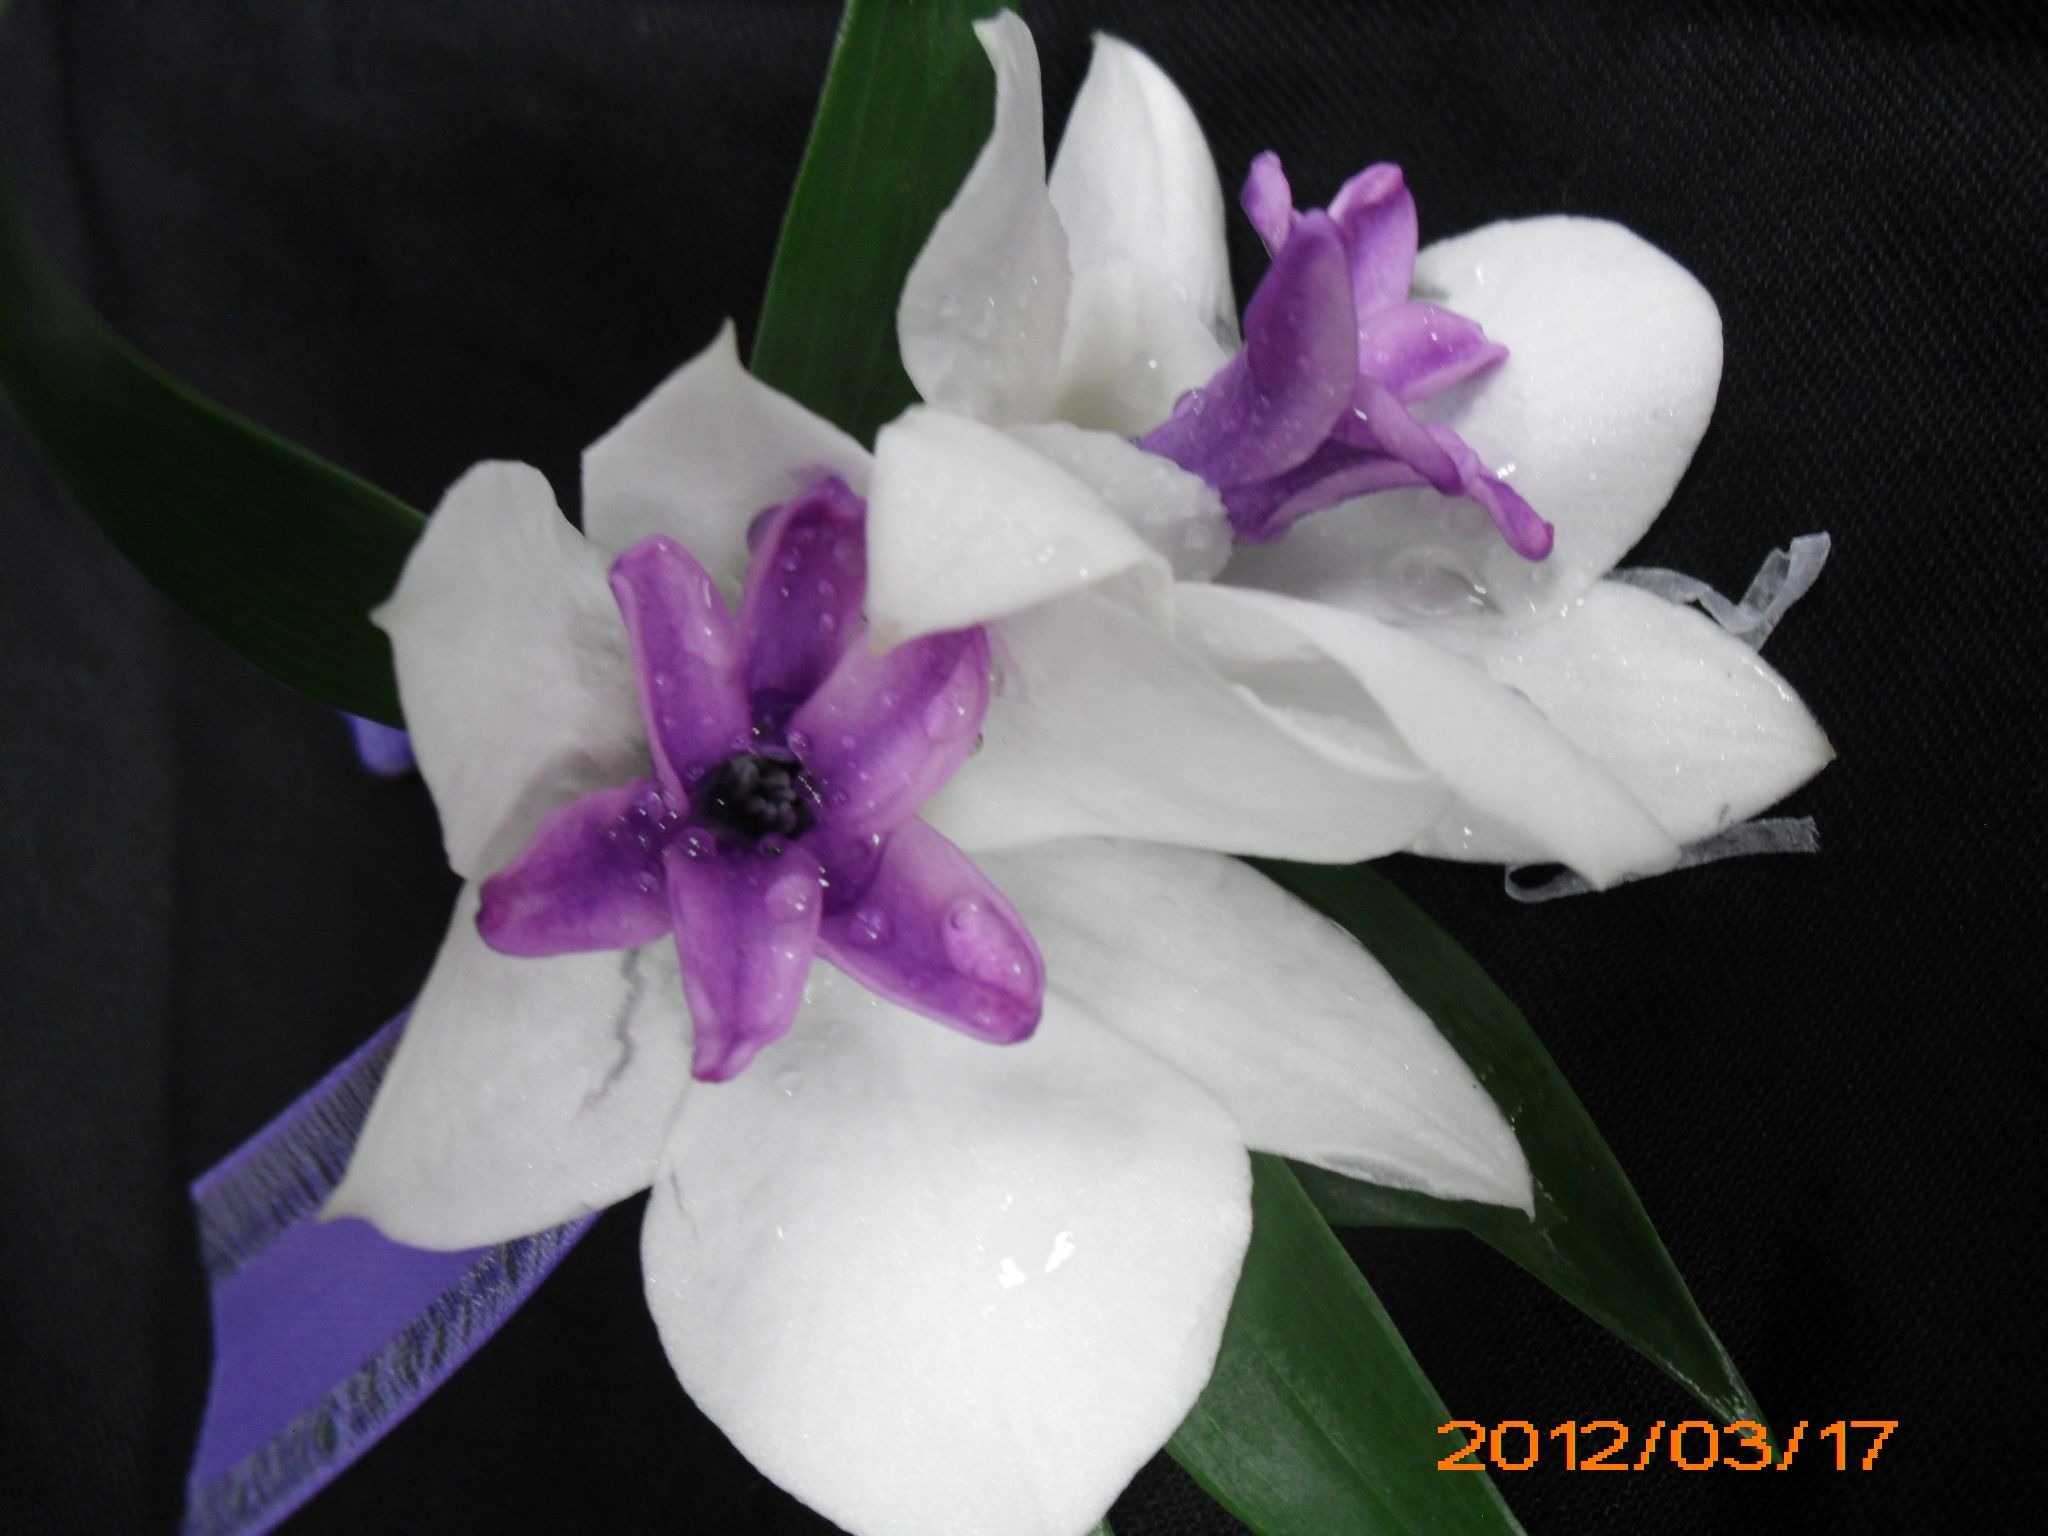 White And Purple Flower Boutonniere For Wedding Events And Prom